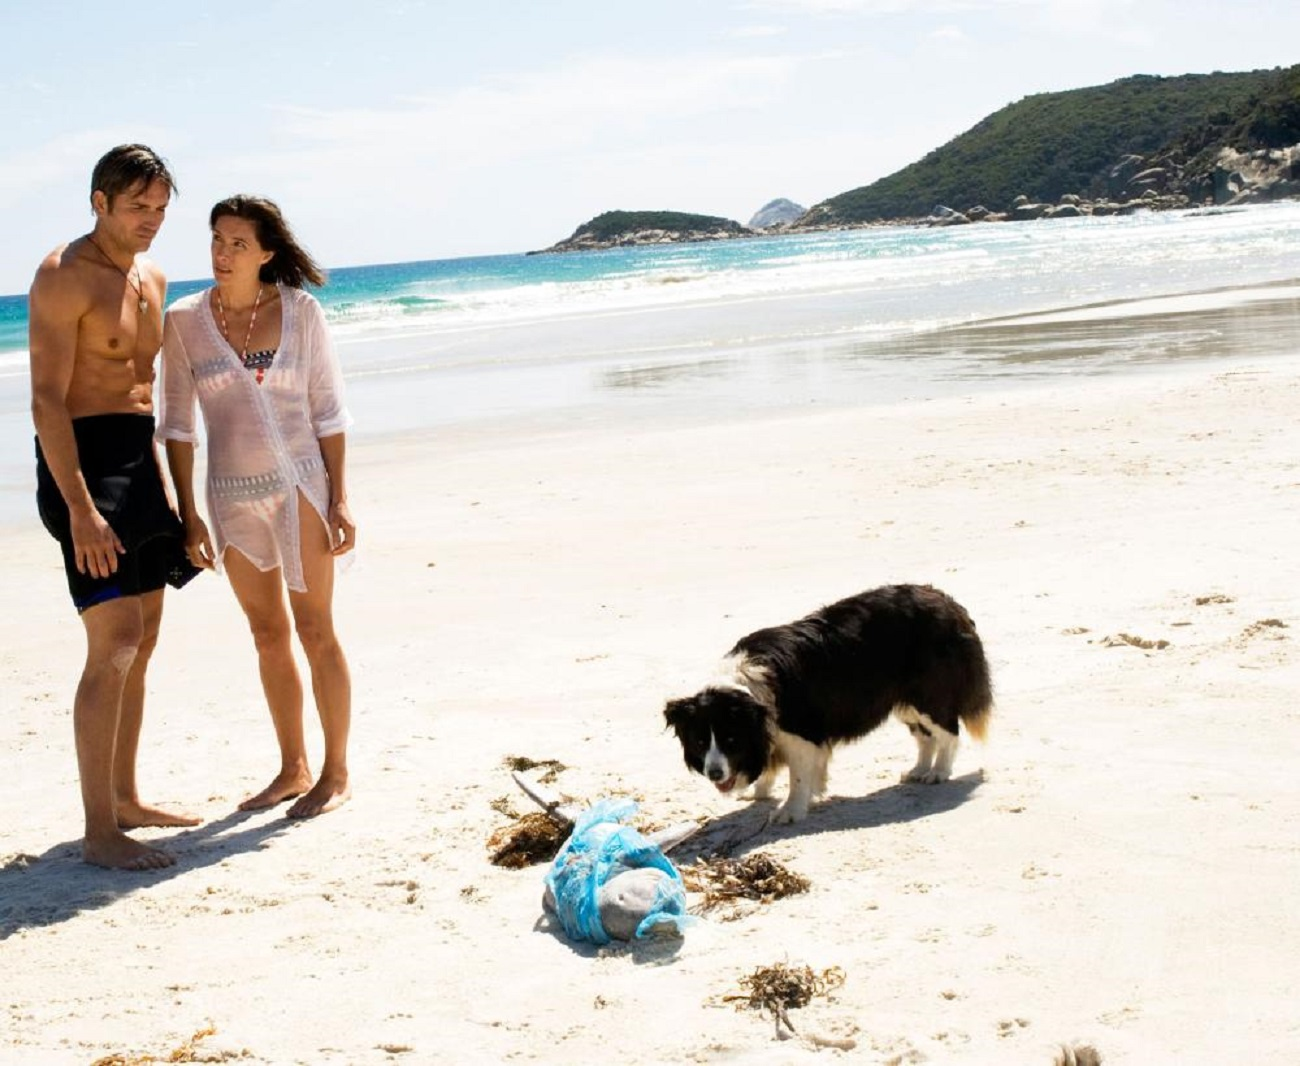 Jim Caviezel and Claudia Karvan as the dog finds something on the beach in Long Weekend (2008)